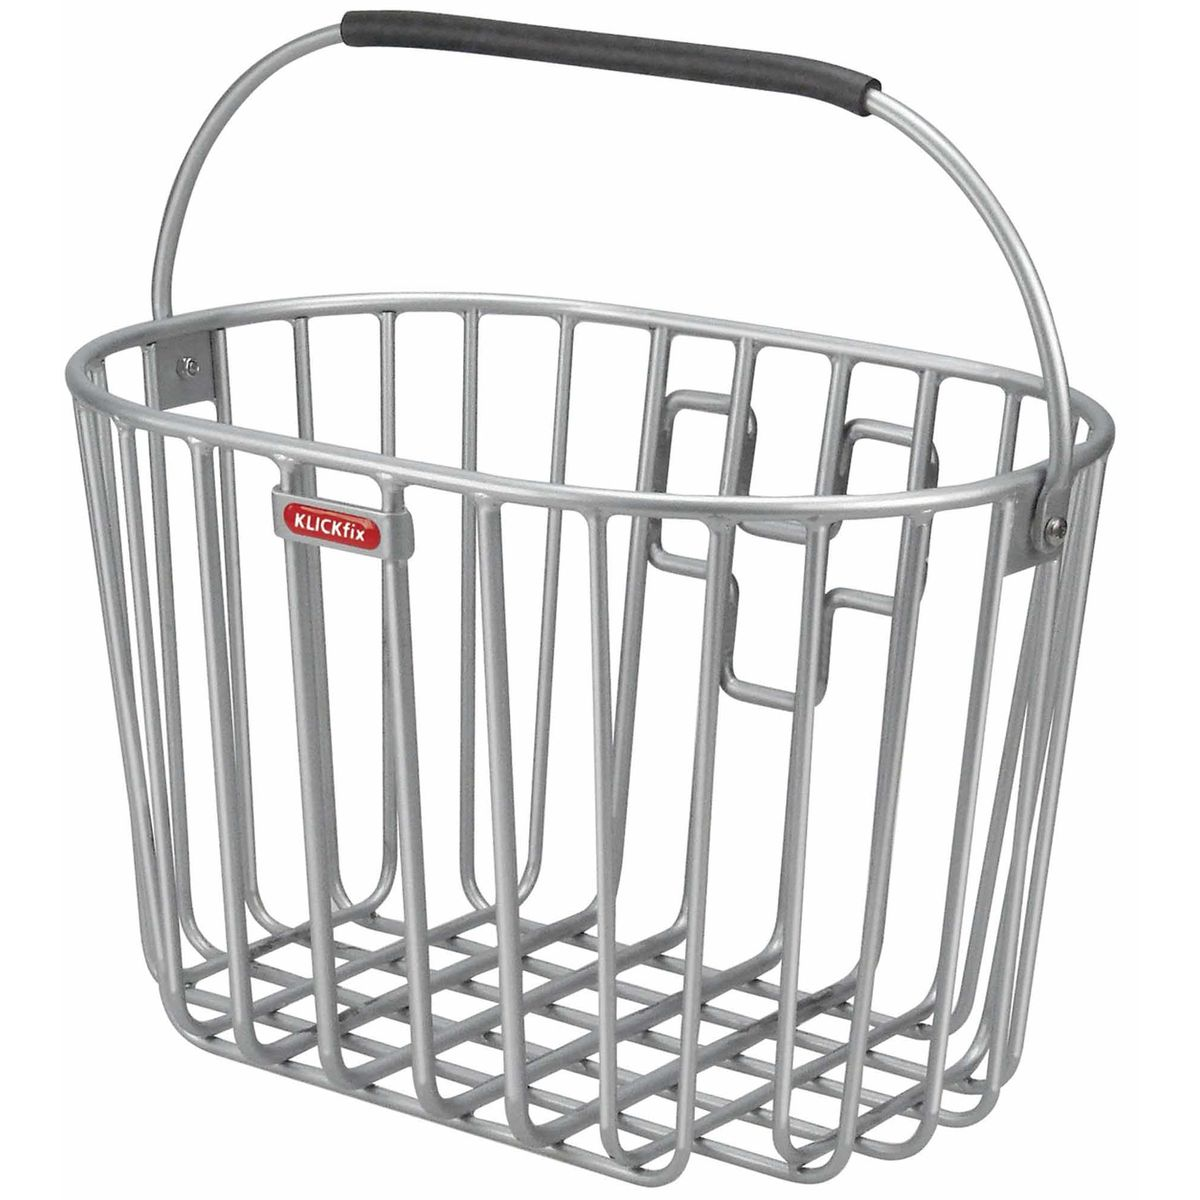 ALUMINO front bicycle basket